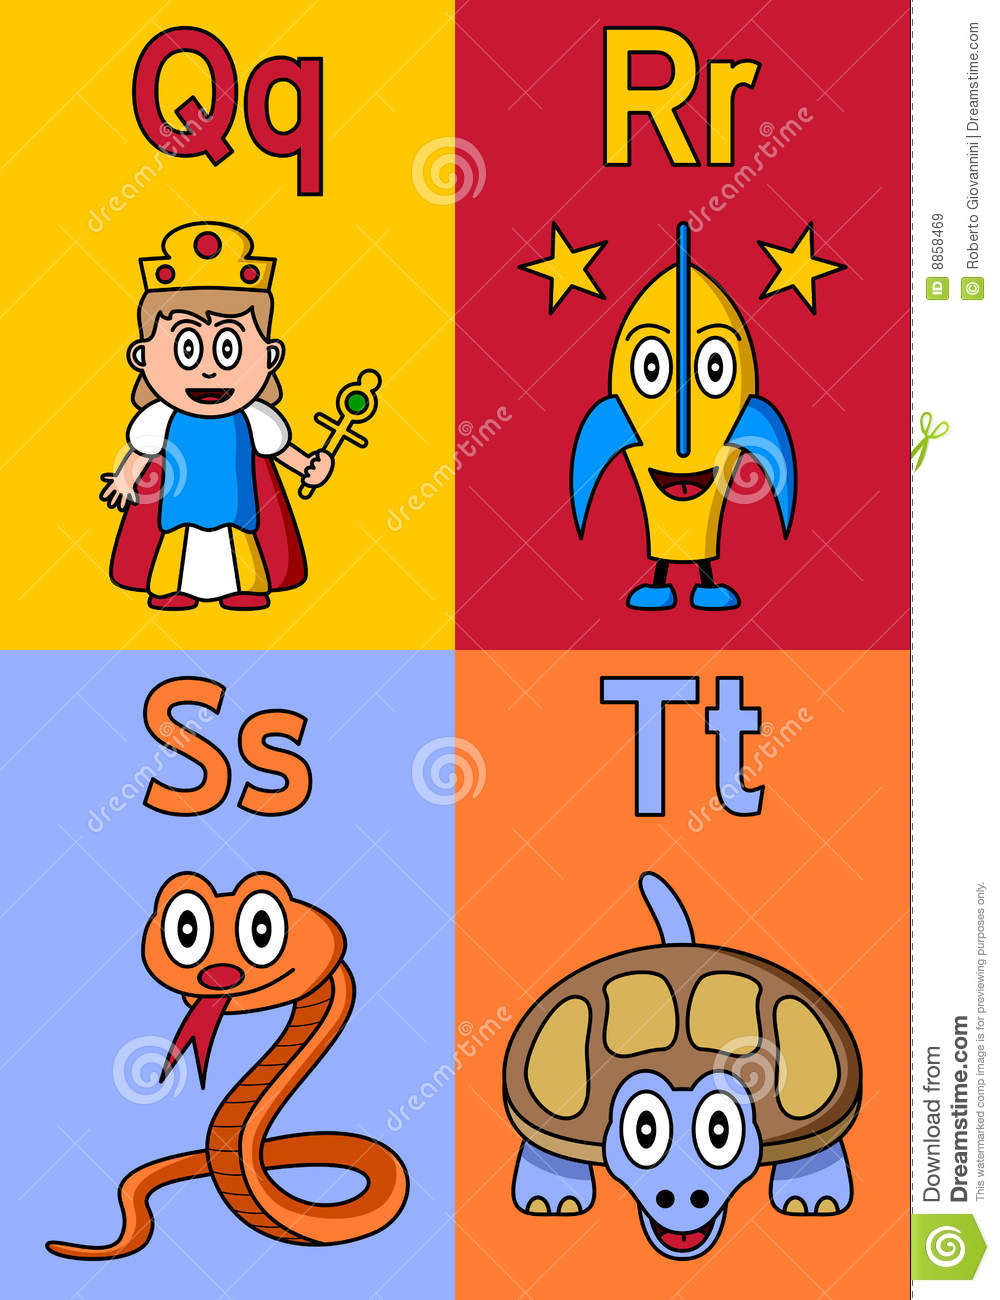 Kindergarten Alphabet Q-T Royalty Free Stock Images - Image: 8858469